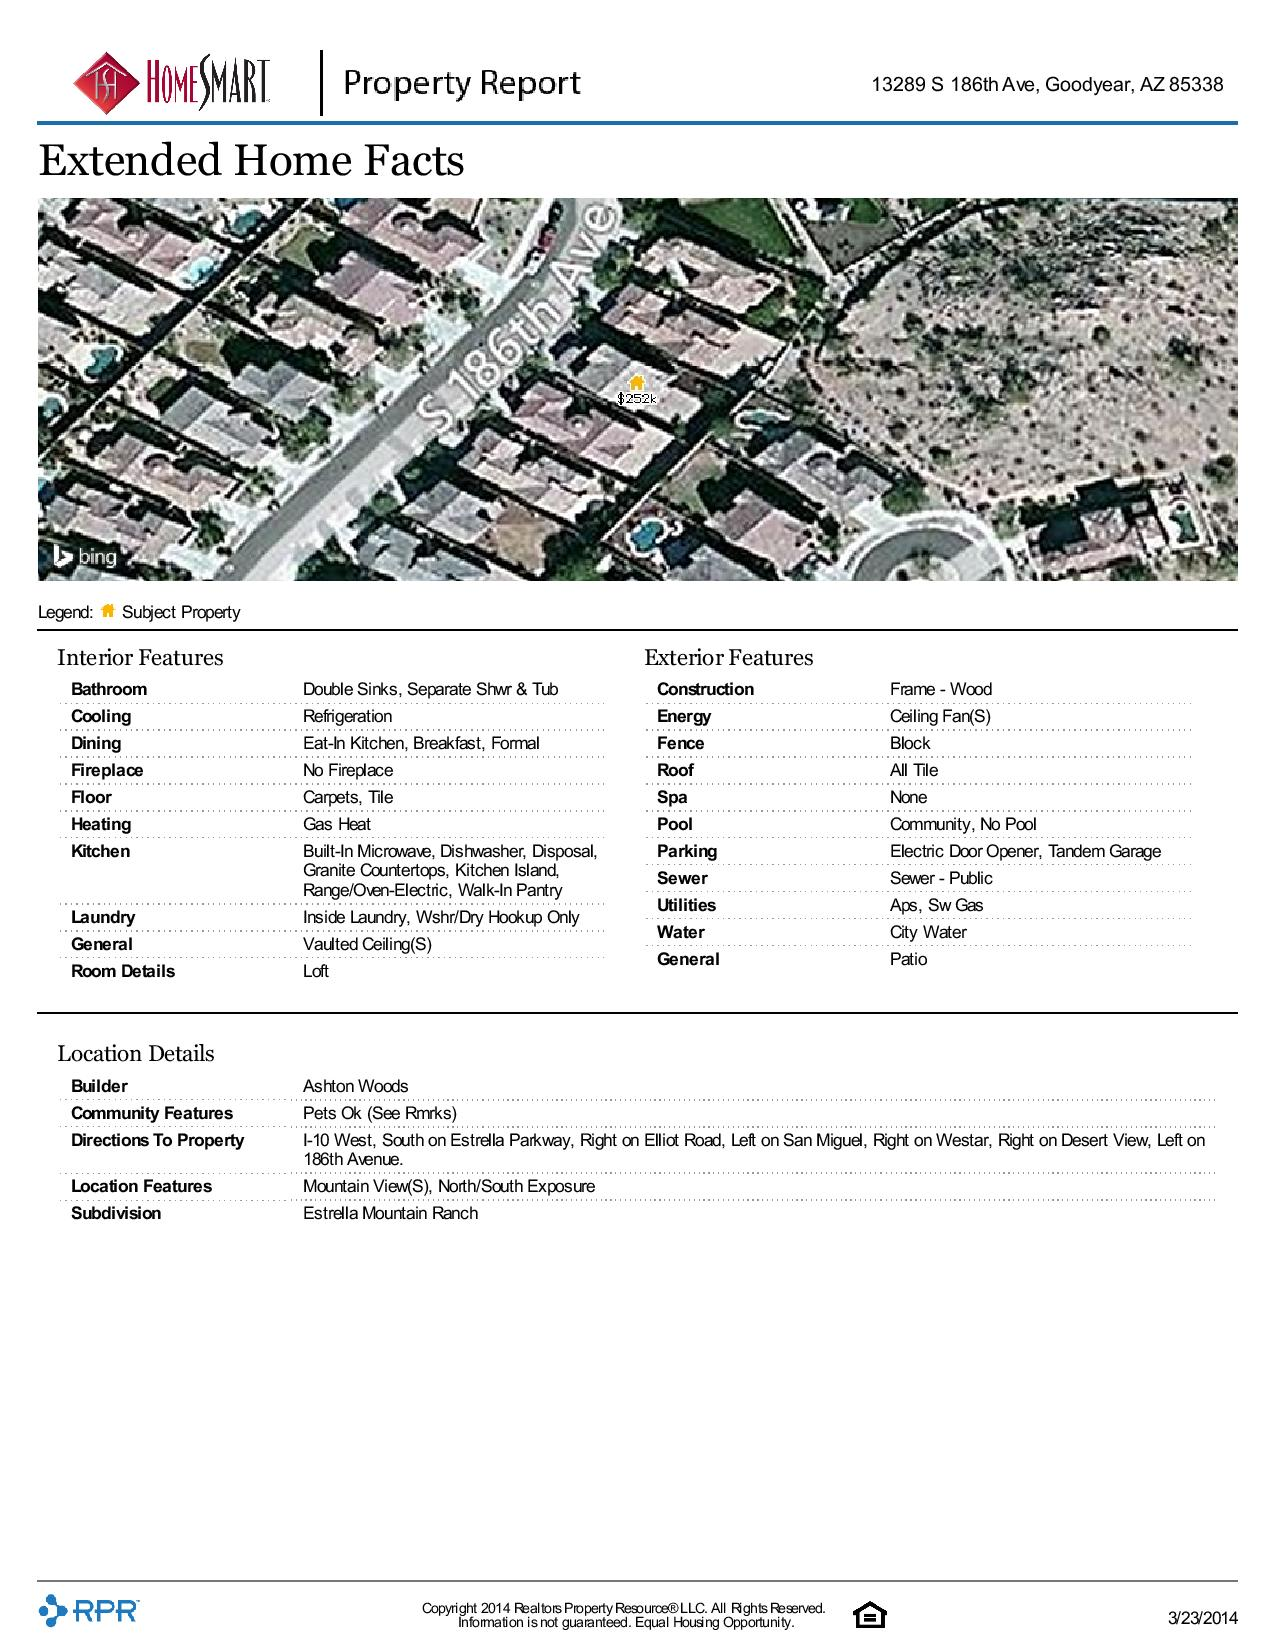 13289-S-186th-Ave-Goodyear-AZ-85338-page-004